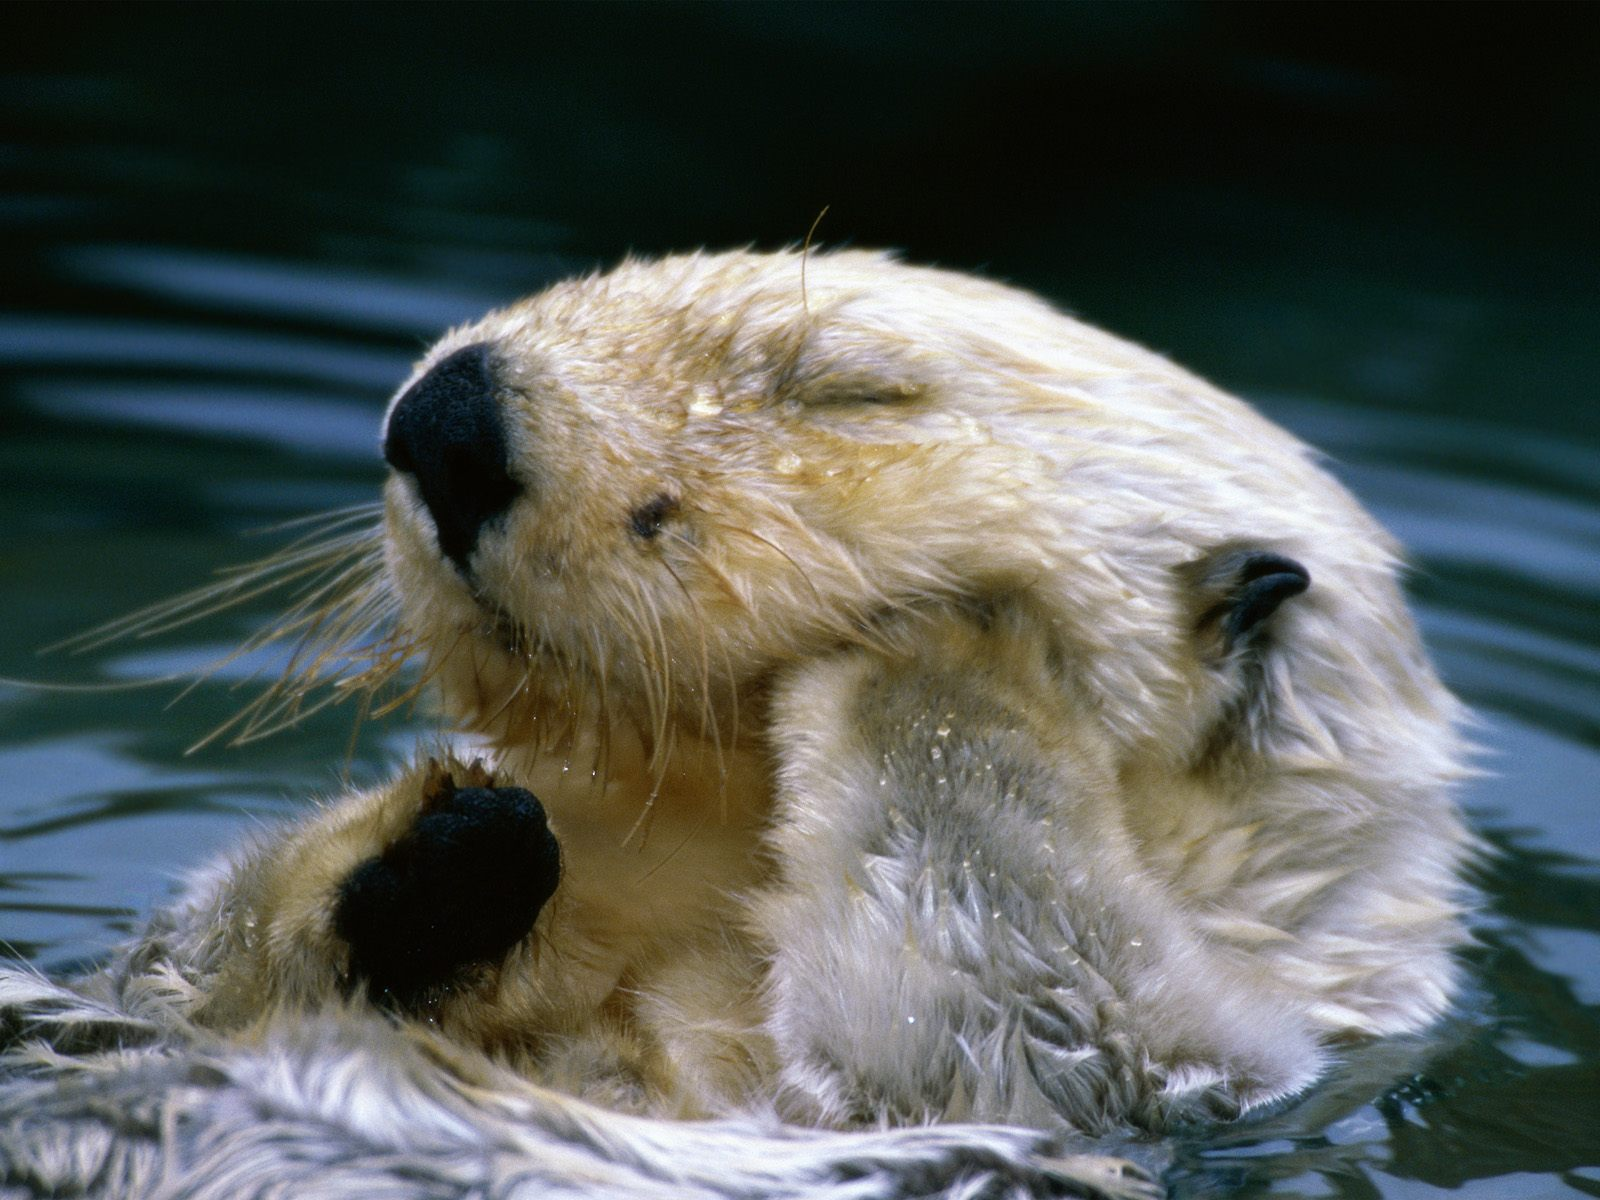 ... swimming having fun in the water sea otter pictures 1600x1200.jpg ,animals wallpapers, ...